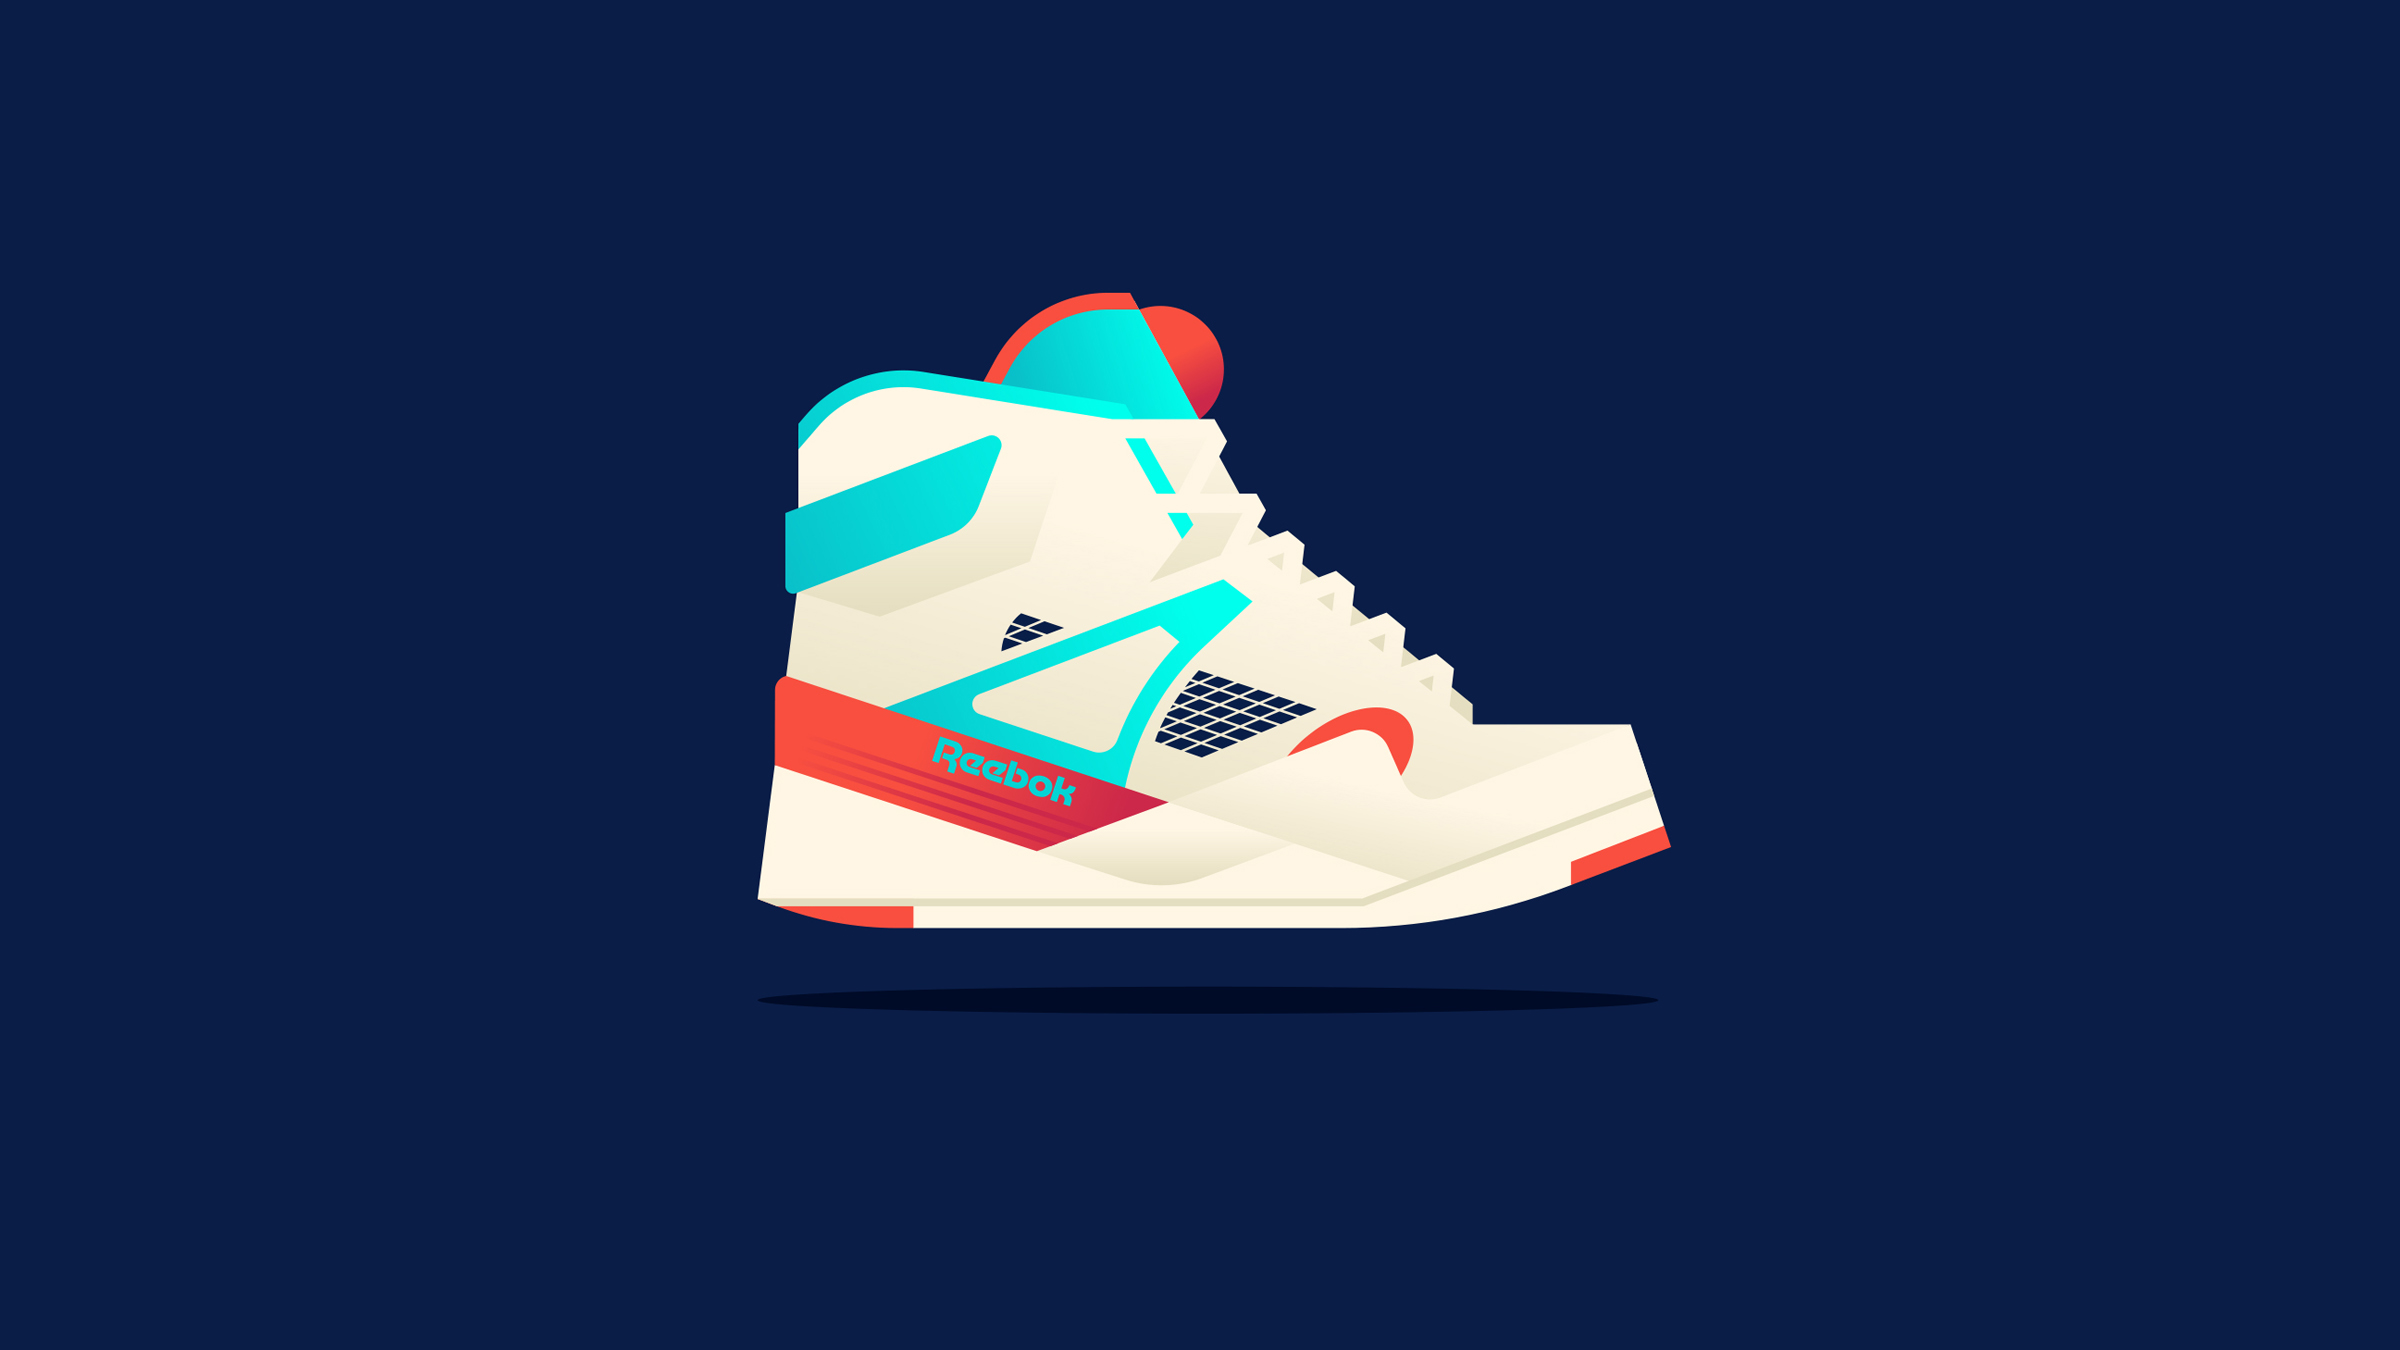 Reebok Pump Illustration